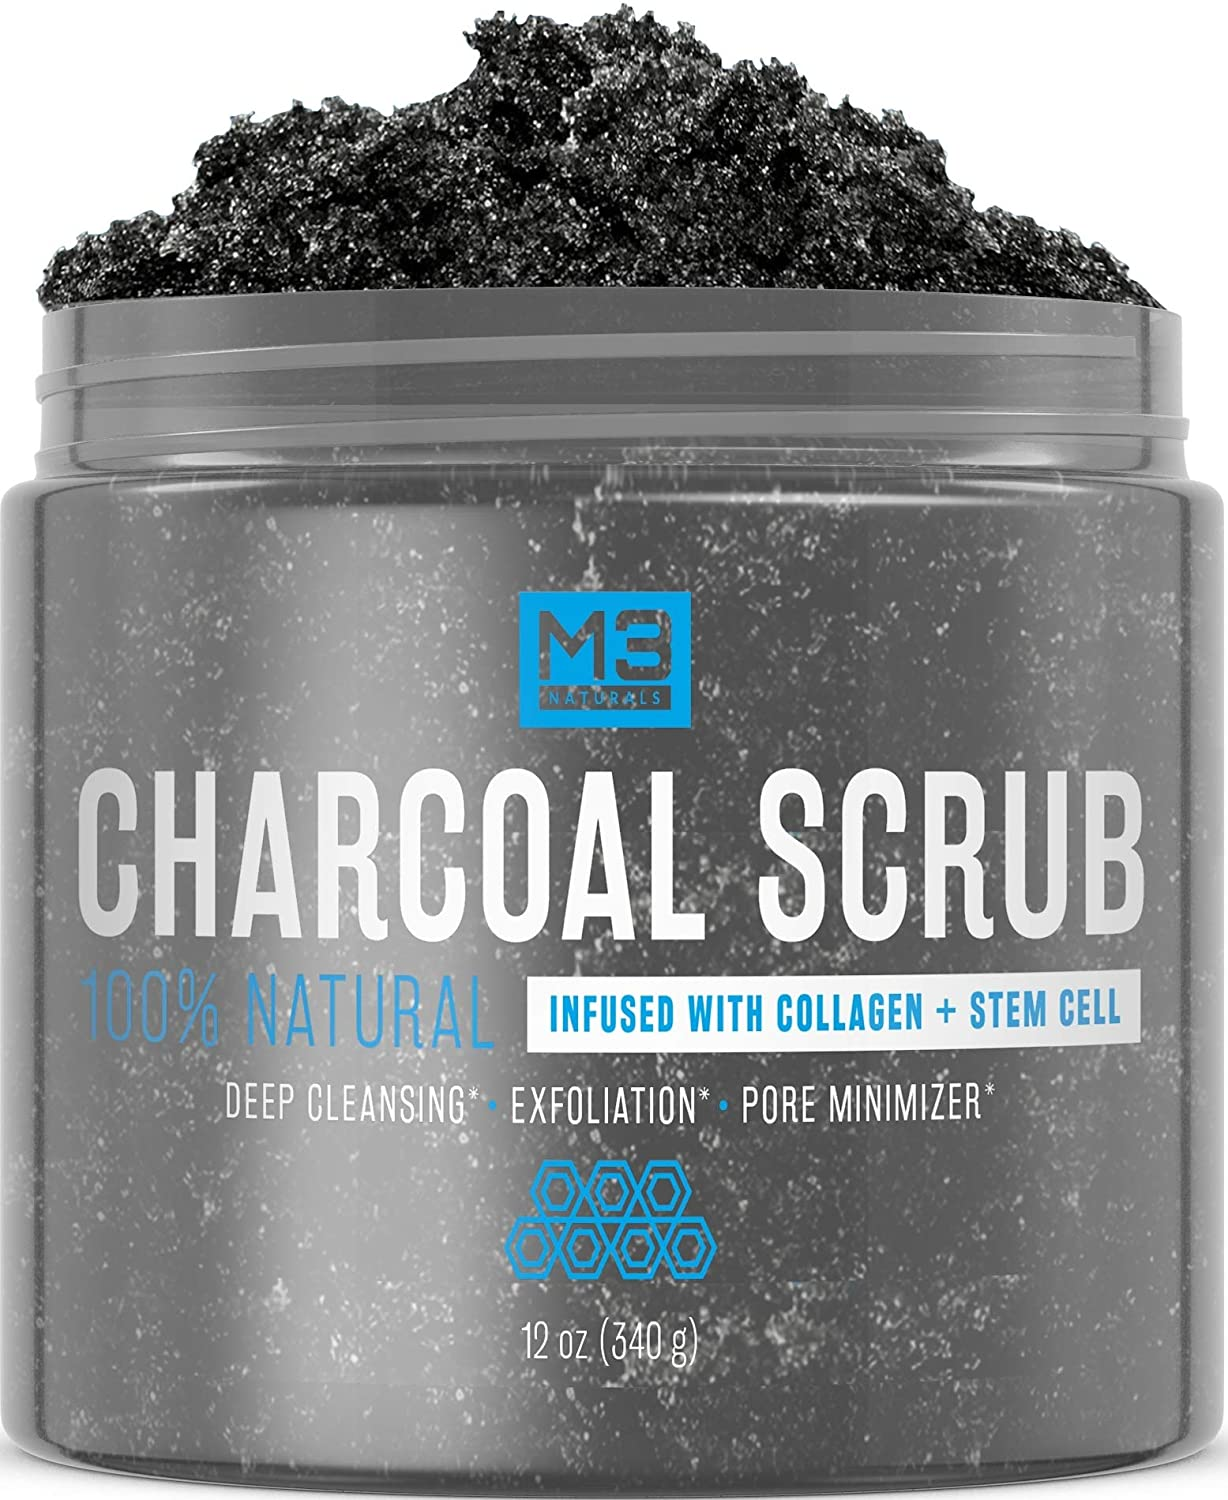 Best Face Scrubs For Acne - M3 Naturals Activated Charcoal Scrub